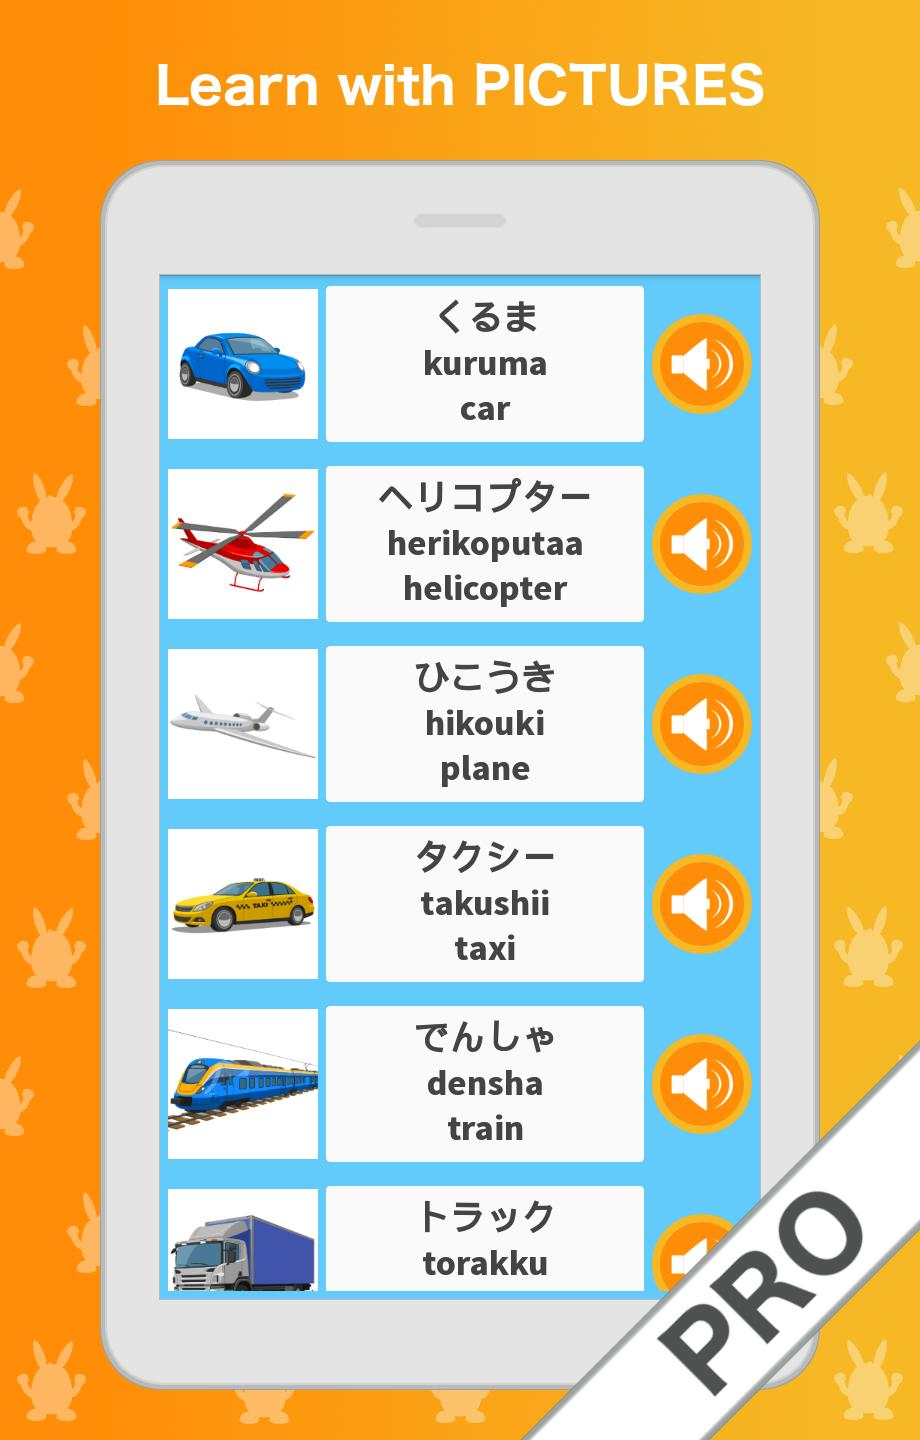 Learn Japanese - Language & Grammar Learning Pro for Android - APK Download